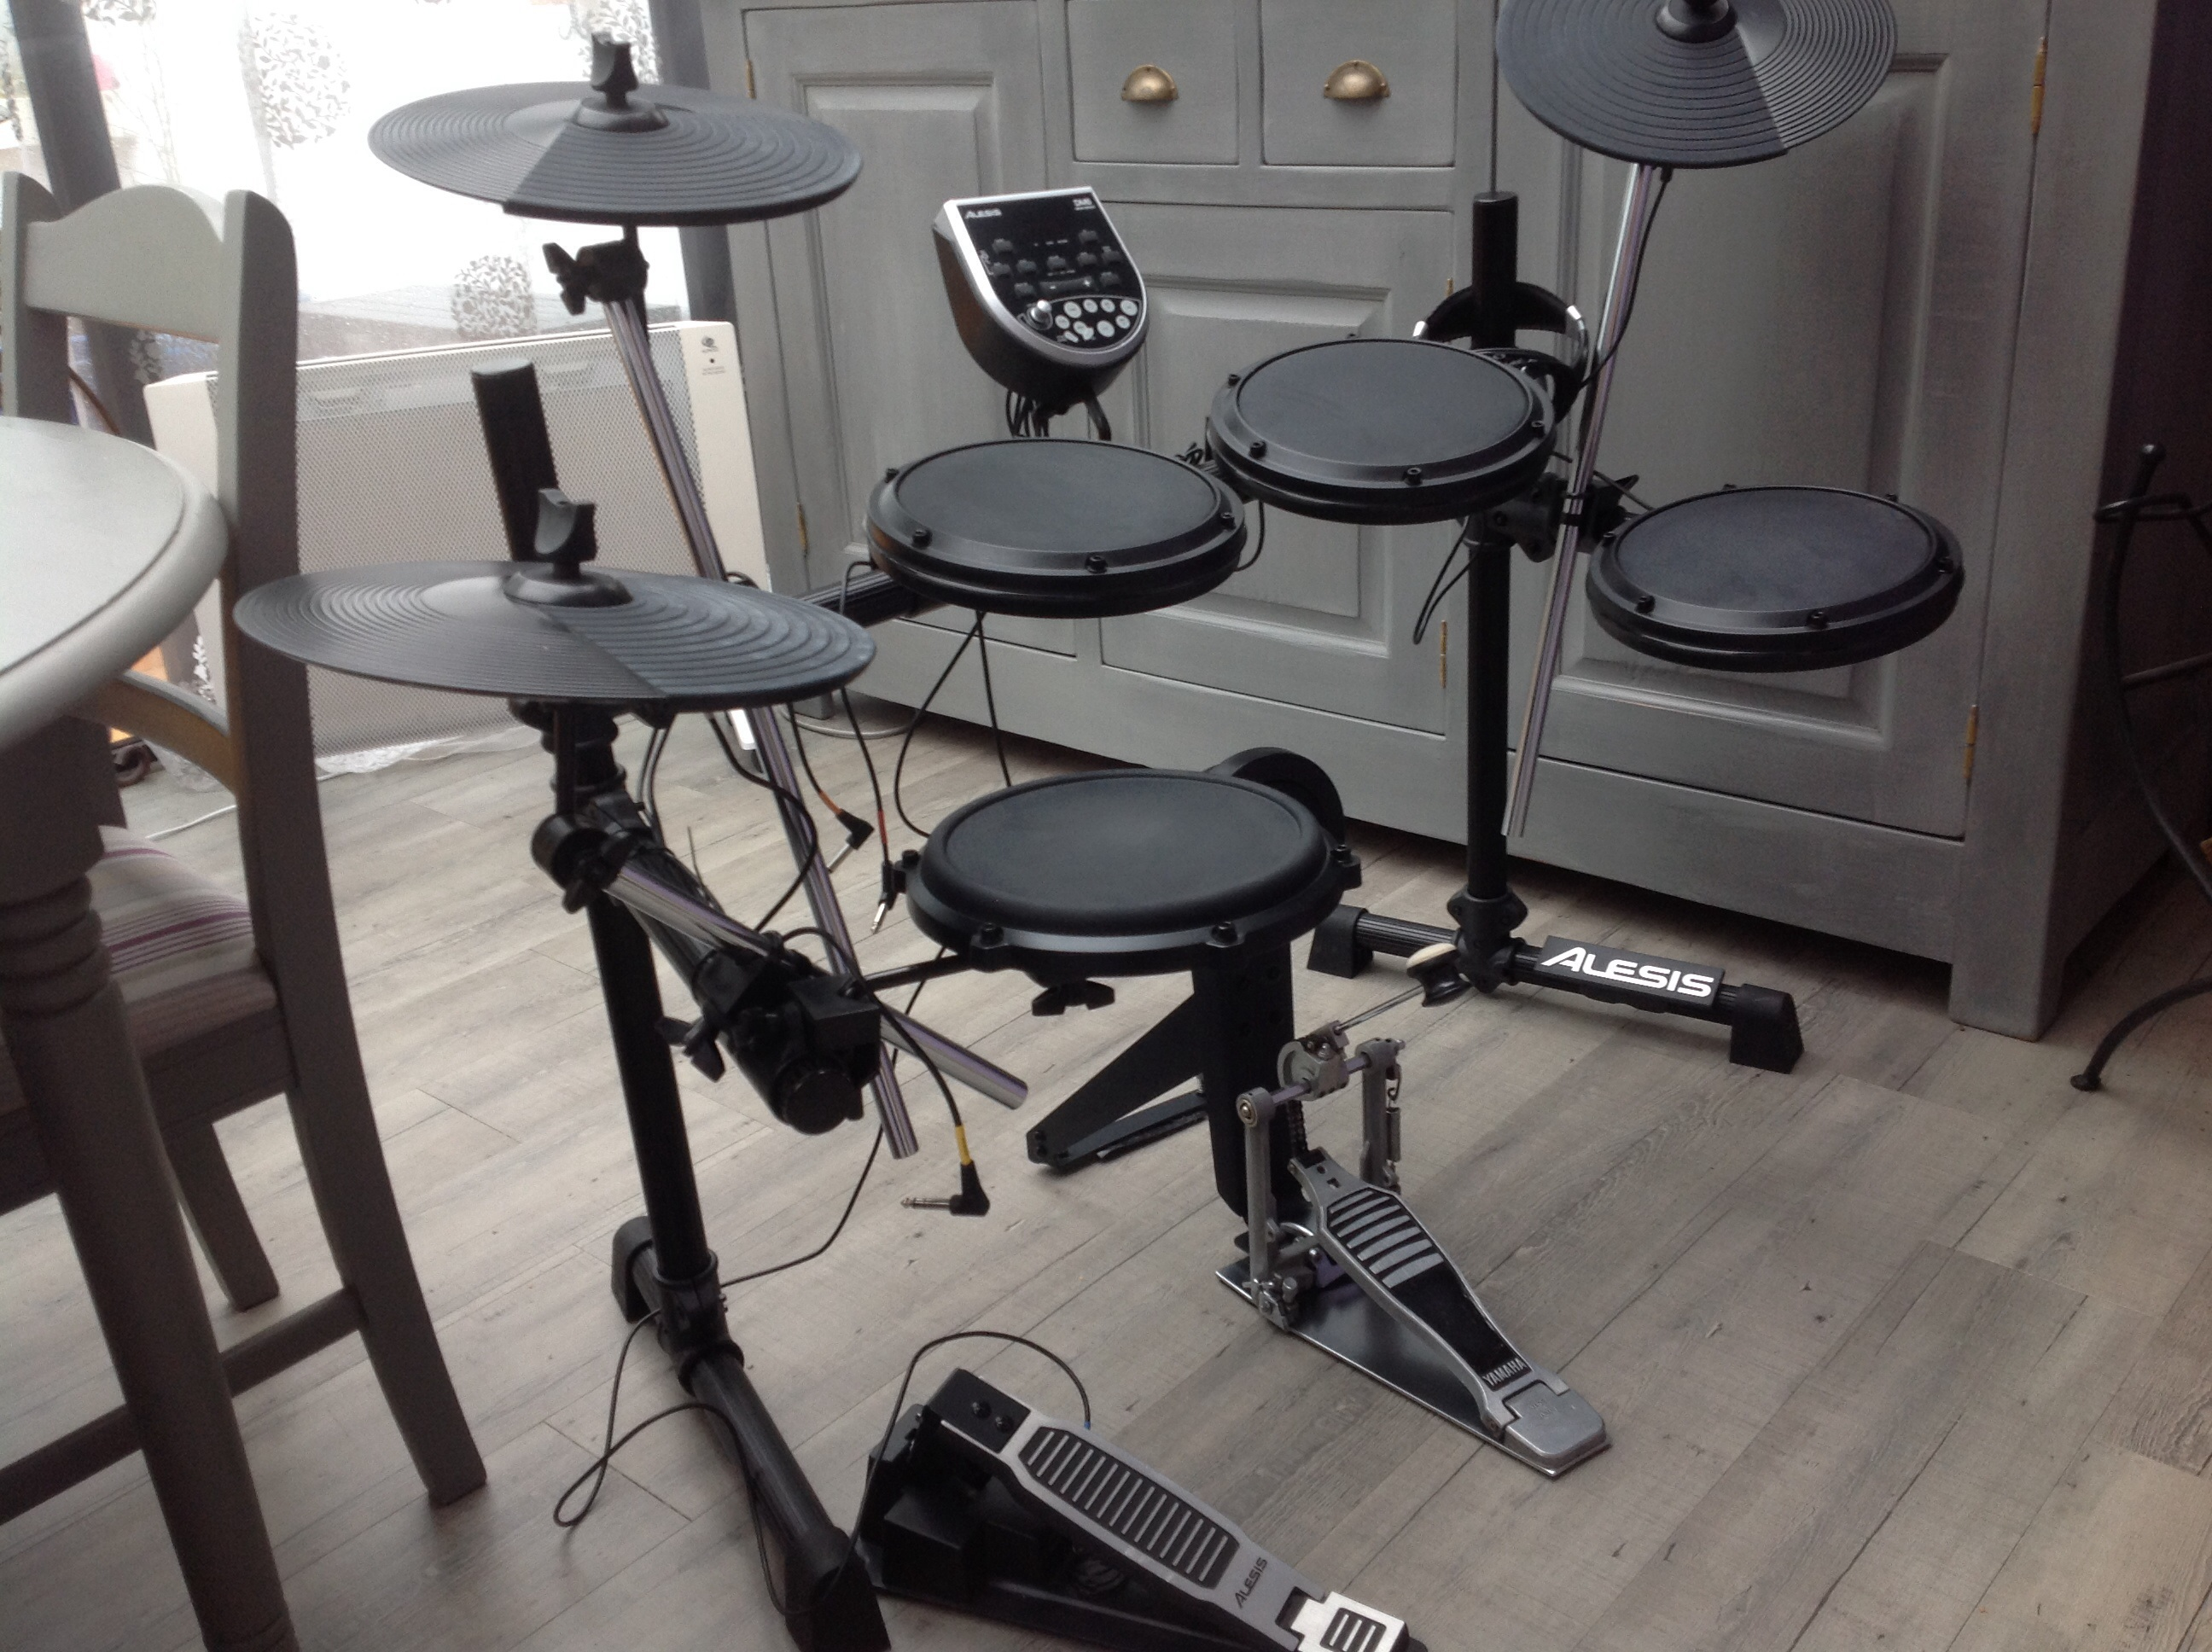 Best Budget Electronic Drum Set 2018 Best Budget Electronic Drum Set